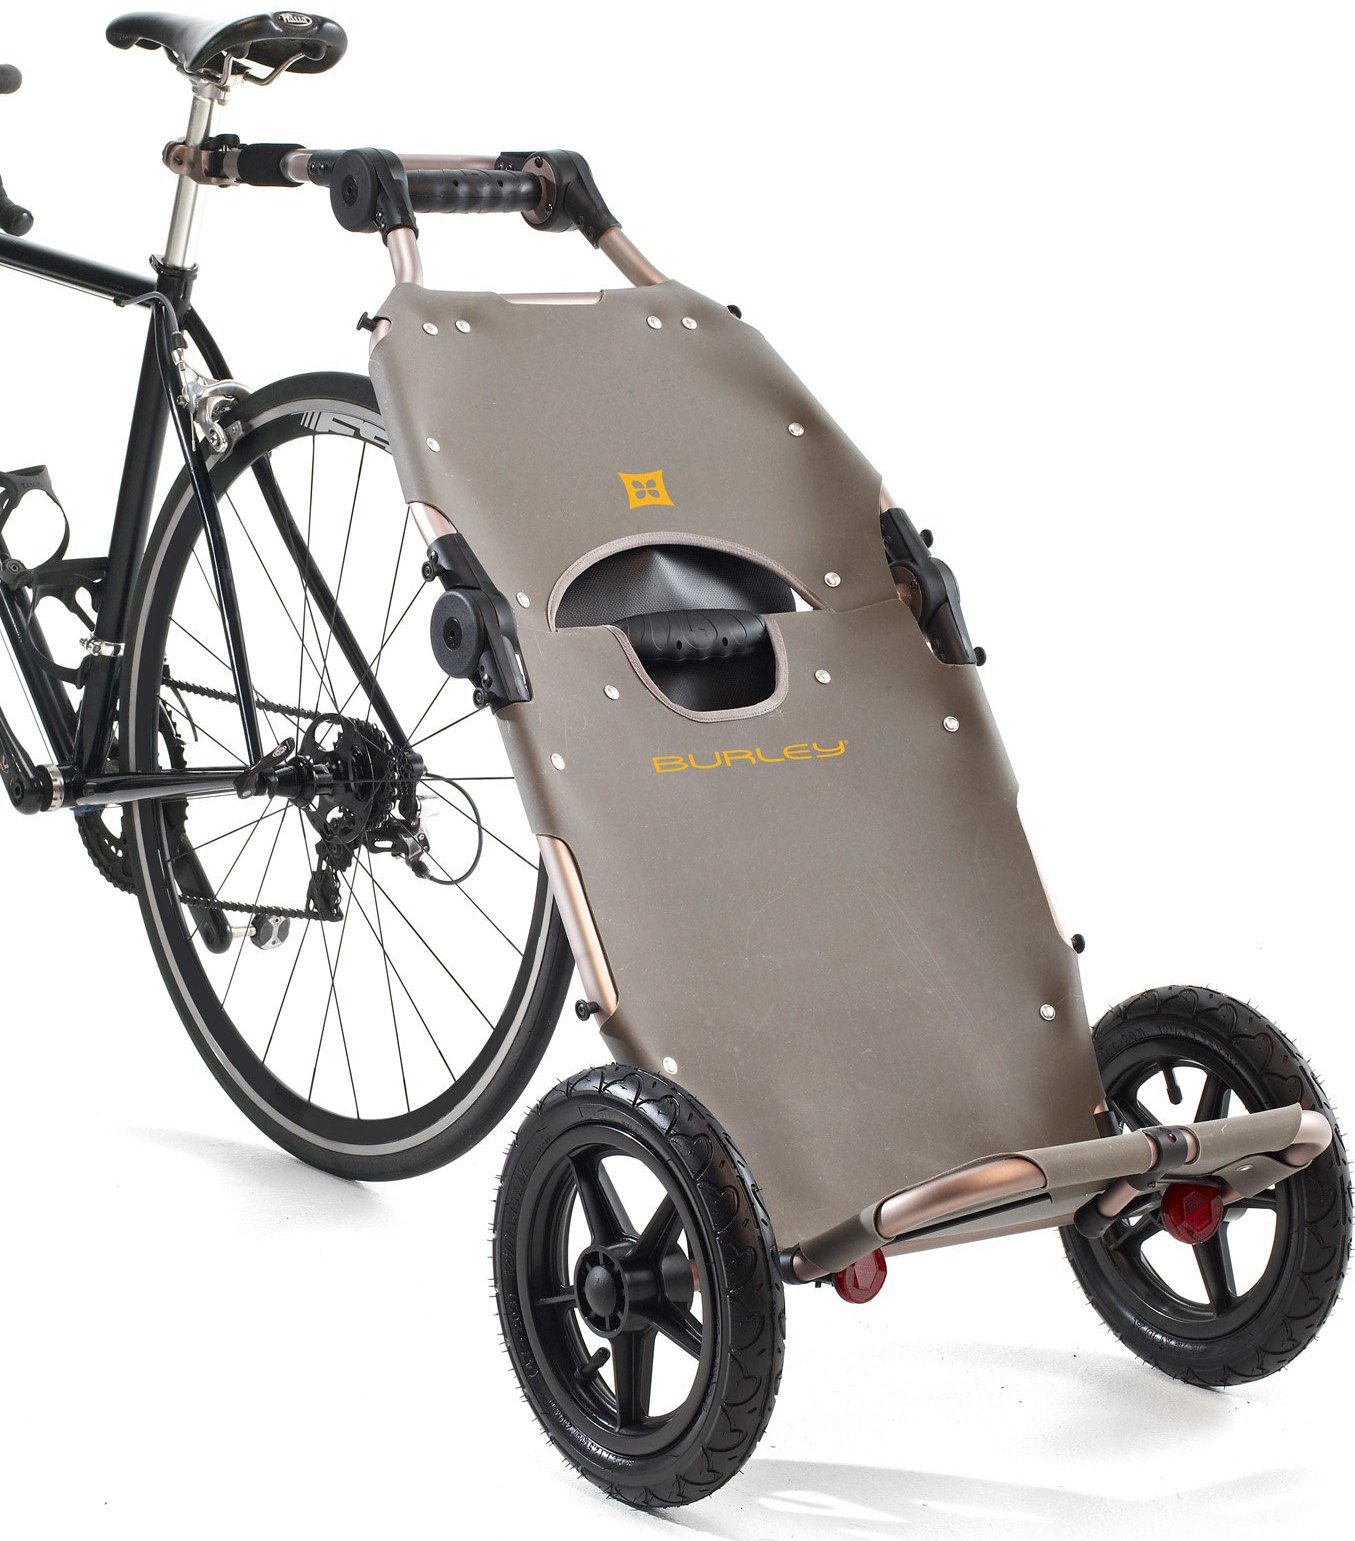 Image of 2014 Burley Travoy Folding Cargo Bike Trailer in Yellow (Colour: grey)